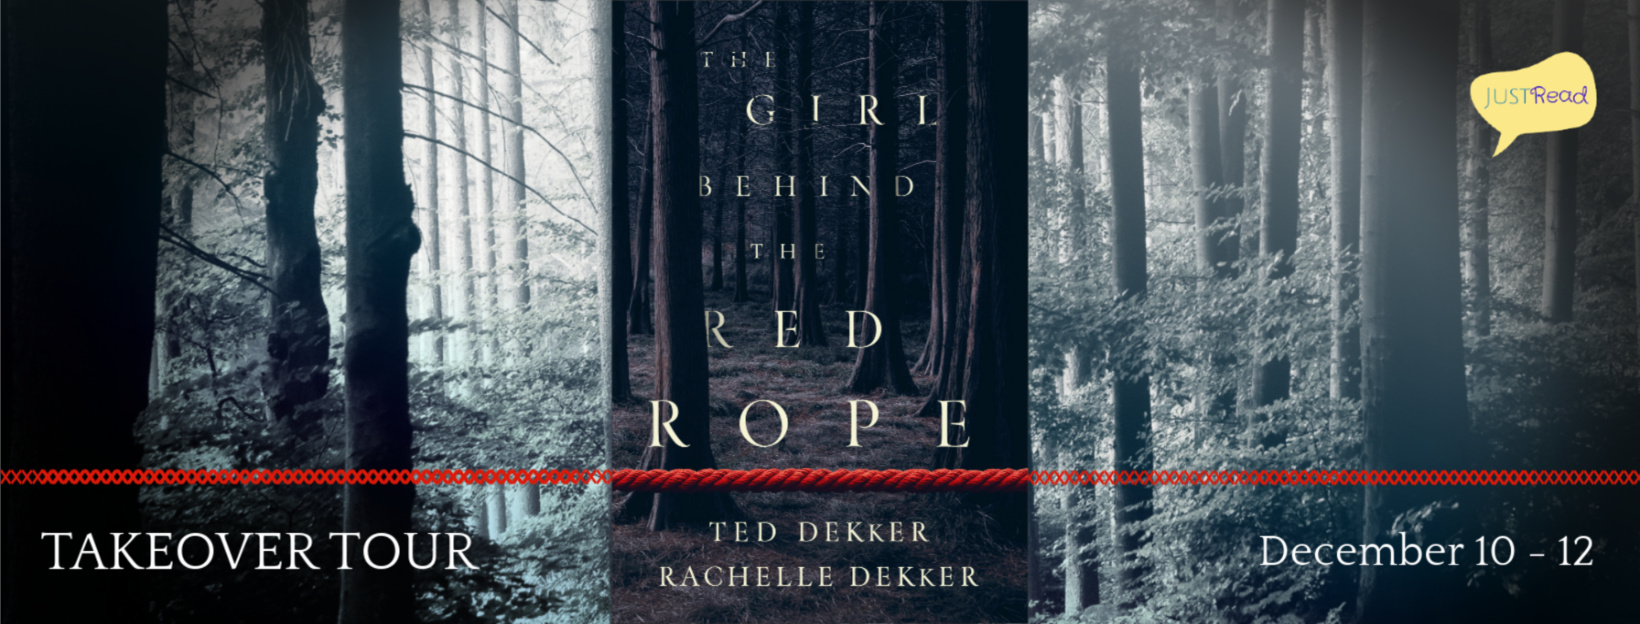 Welcome to The Girl Behind the Red Rope Takeover Tour & Giveaway